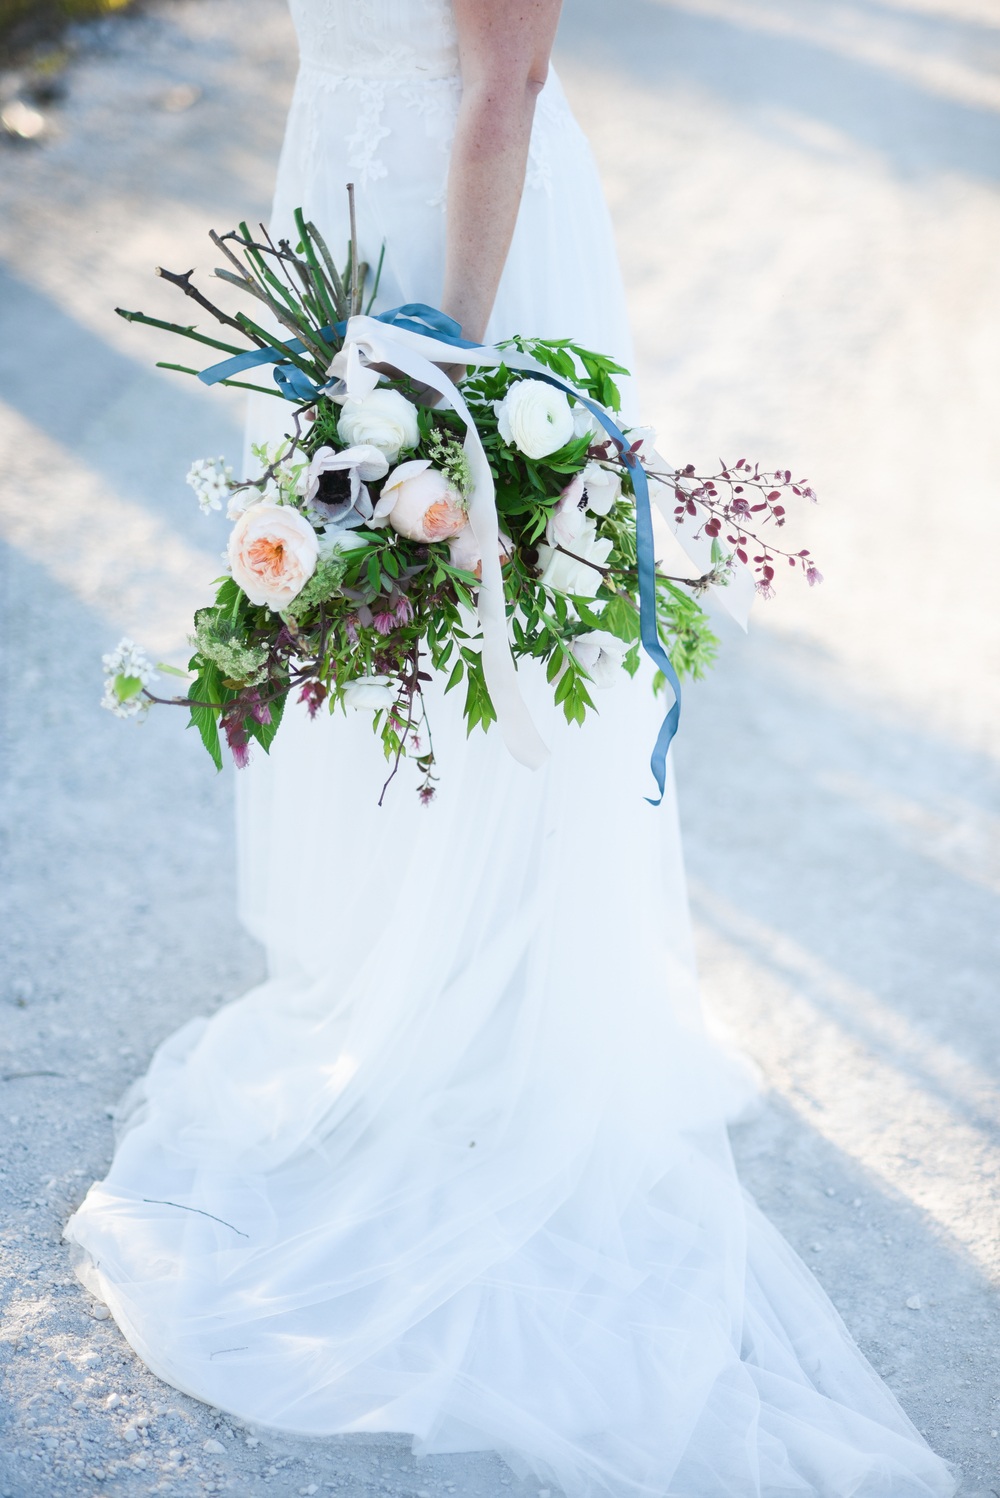 daniel-eastwood-photography-savannah-wedding-photographer-savannah-wedding-planner-savannah-bridal-boutique-savannah-weddings-tybee-wedding-ivory-and-beau-bridal-boutique-ti-adora-wedding-dresses-boho-bride-5.JPG